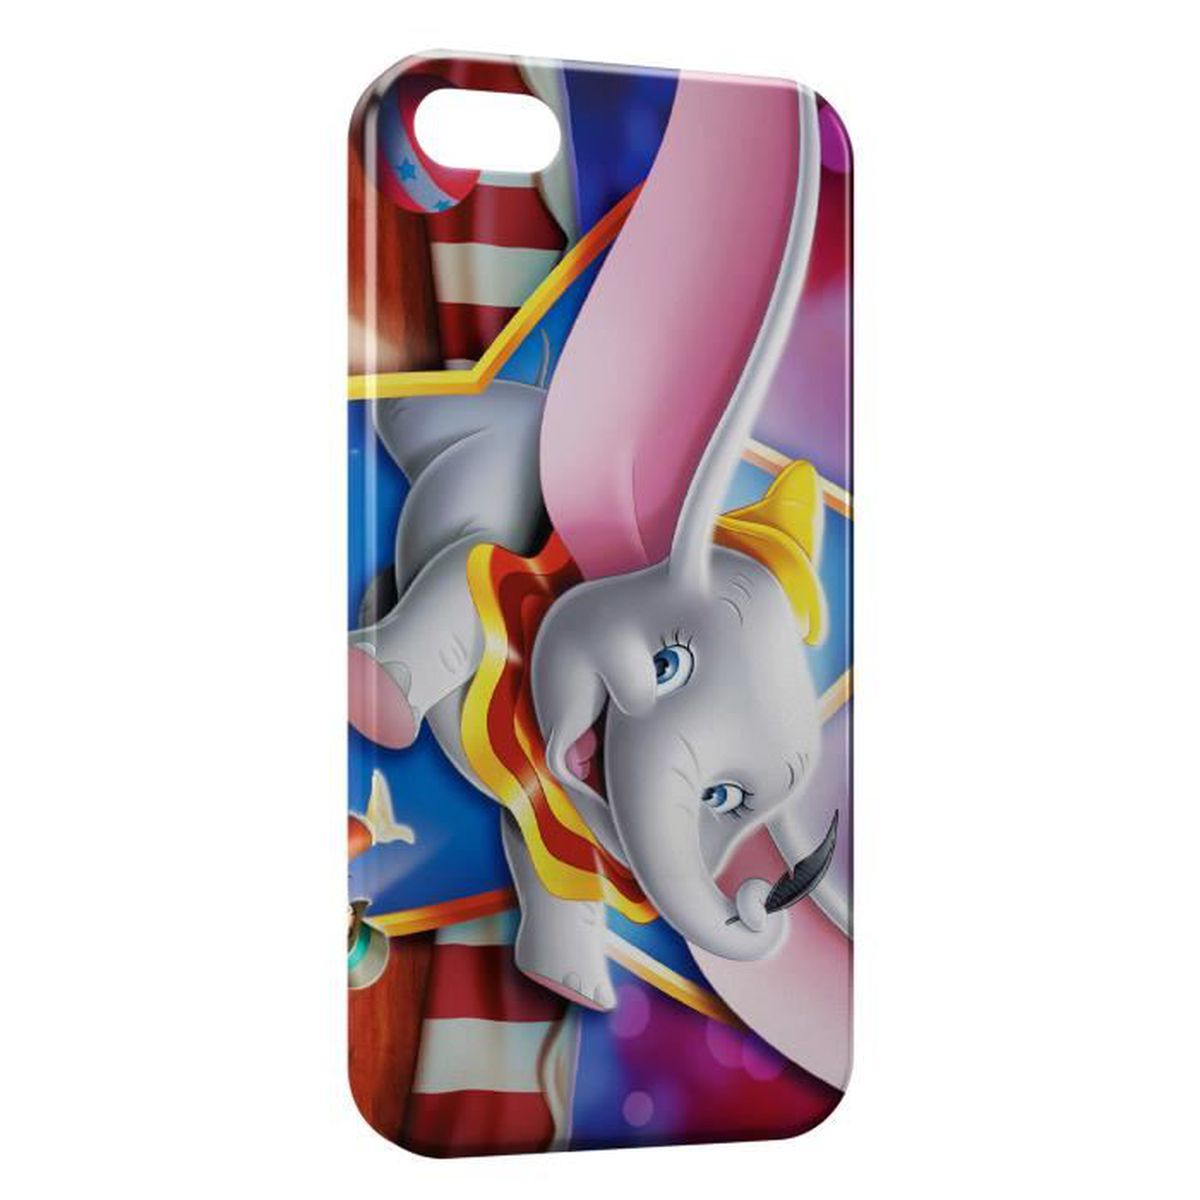 coque dumbo iphone 7